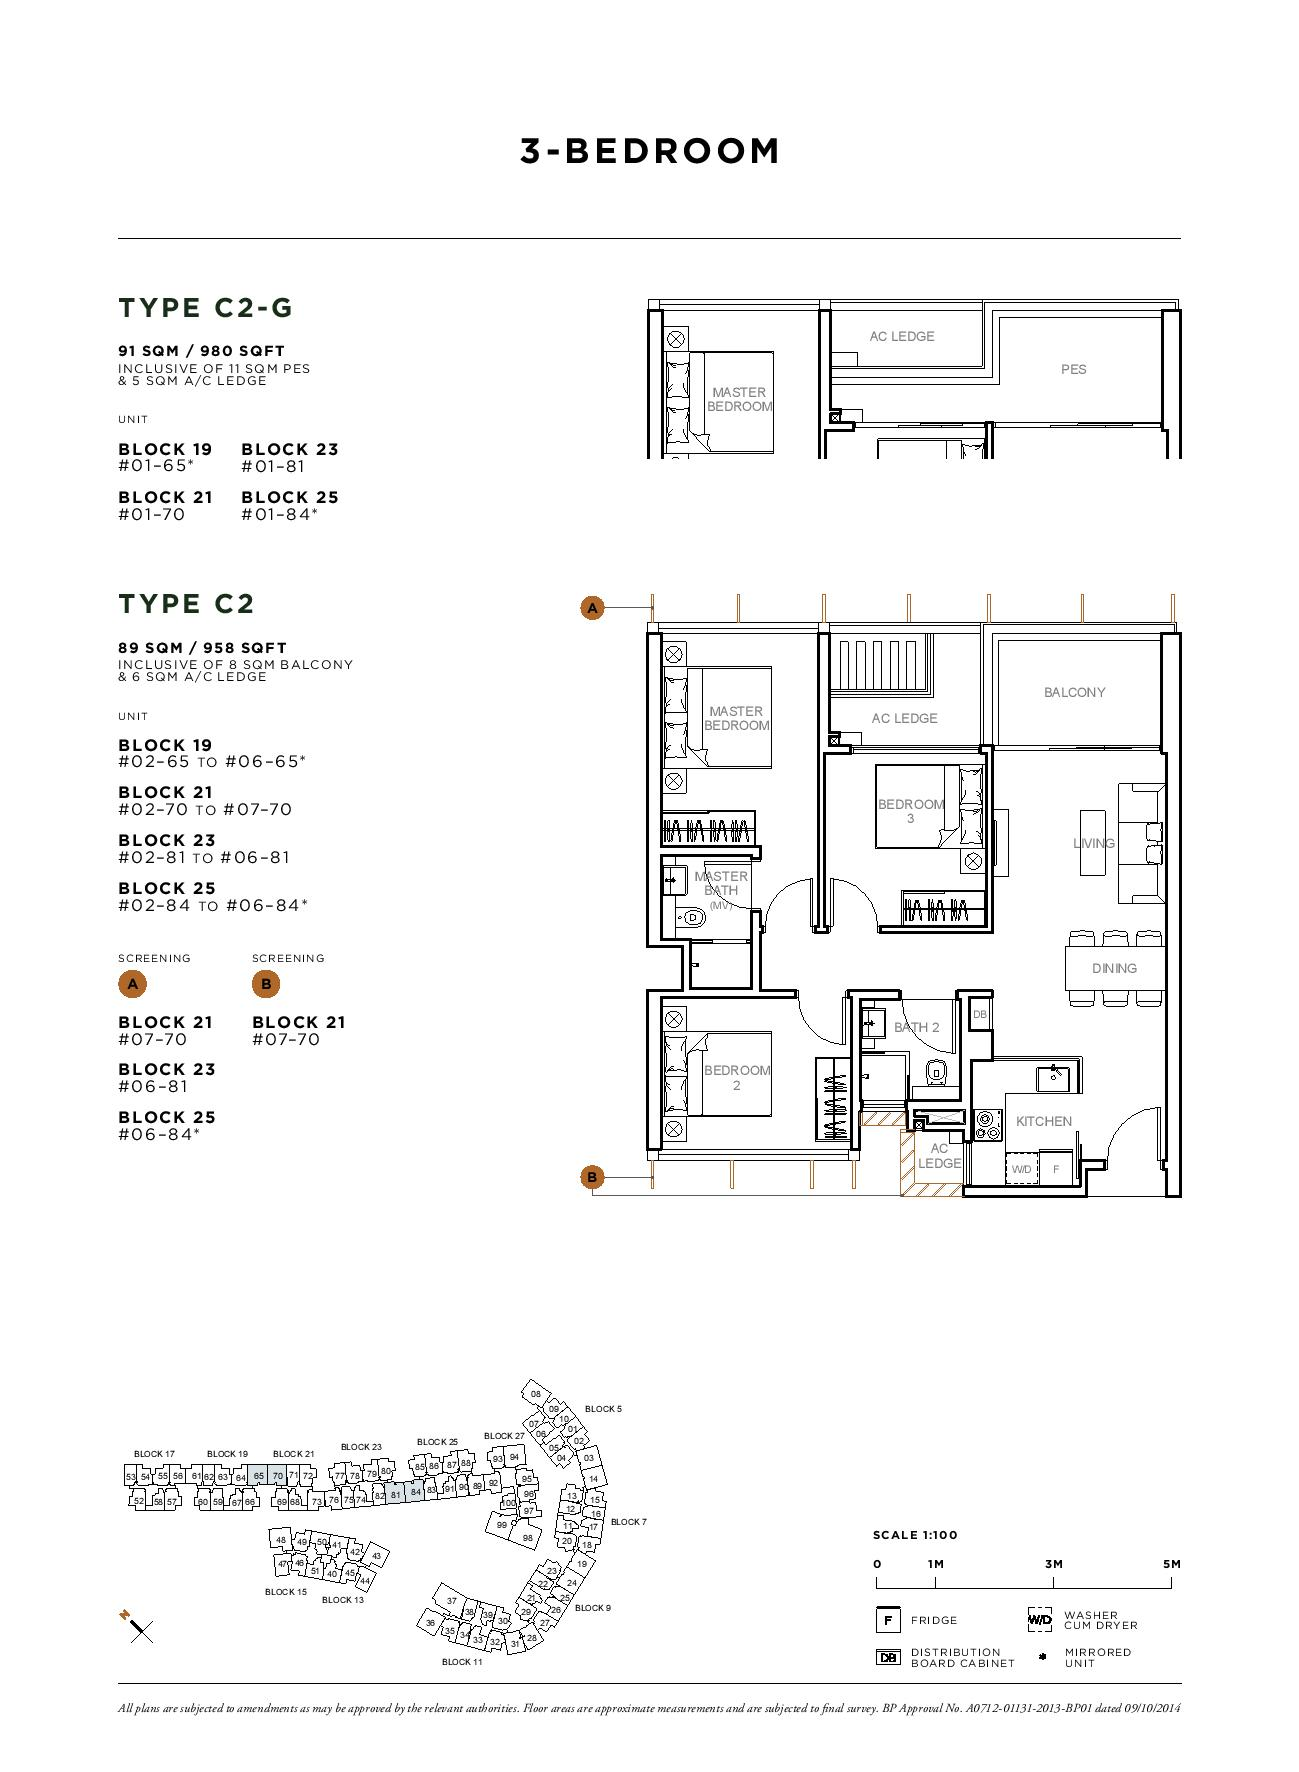 Sophia Hills 3 Bedroom Type C2-G Floor Plans